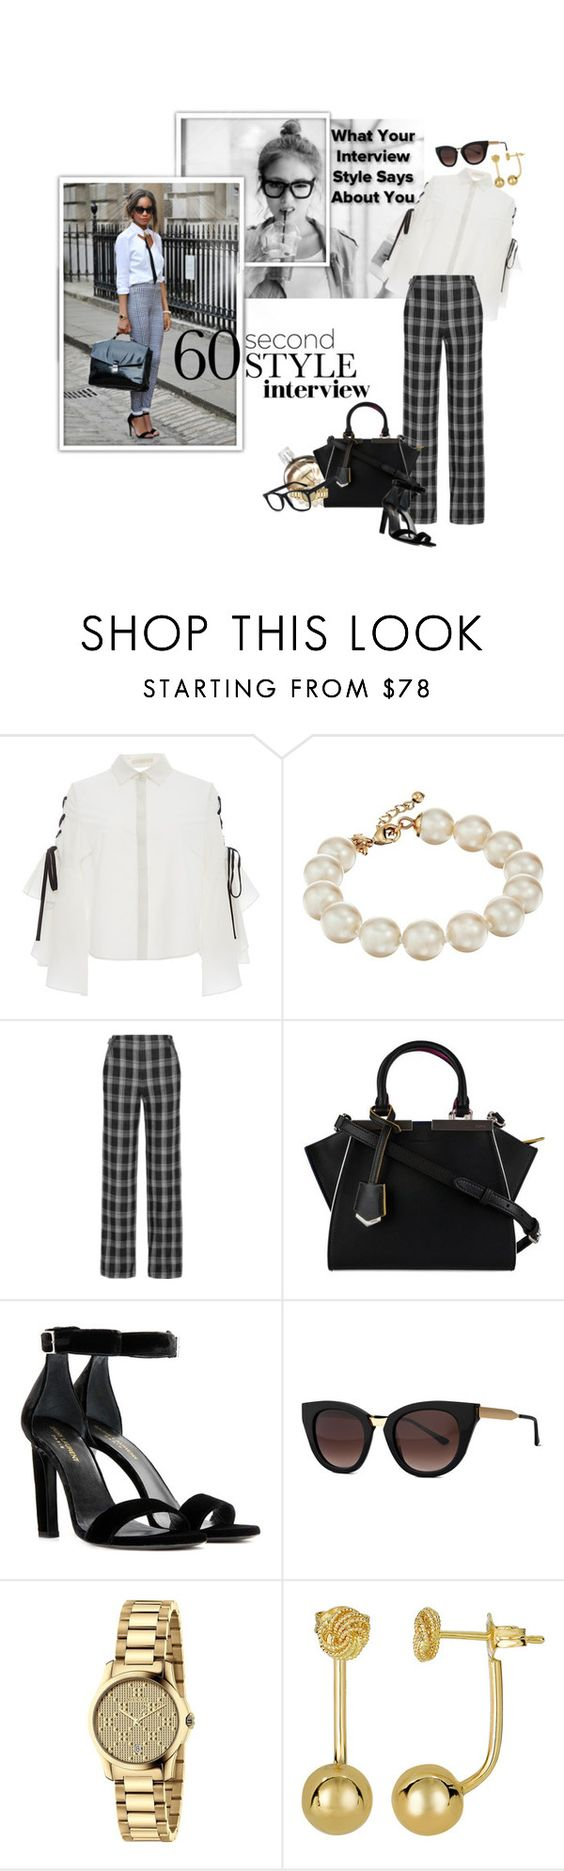 """""""60-Second Style: Job Interview"""" by ivyargmagno ❤ liked on Polyvore featuring Chanel, Jonathan Simkhai, Kate Spade, Proenza Schouler, Fendi, Yves Saint Laurent, Thierry Lasry, Gucci, jobinterview and 60secondstyle"""